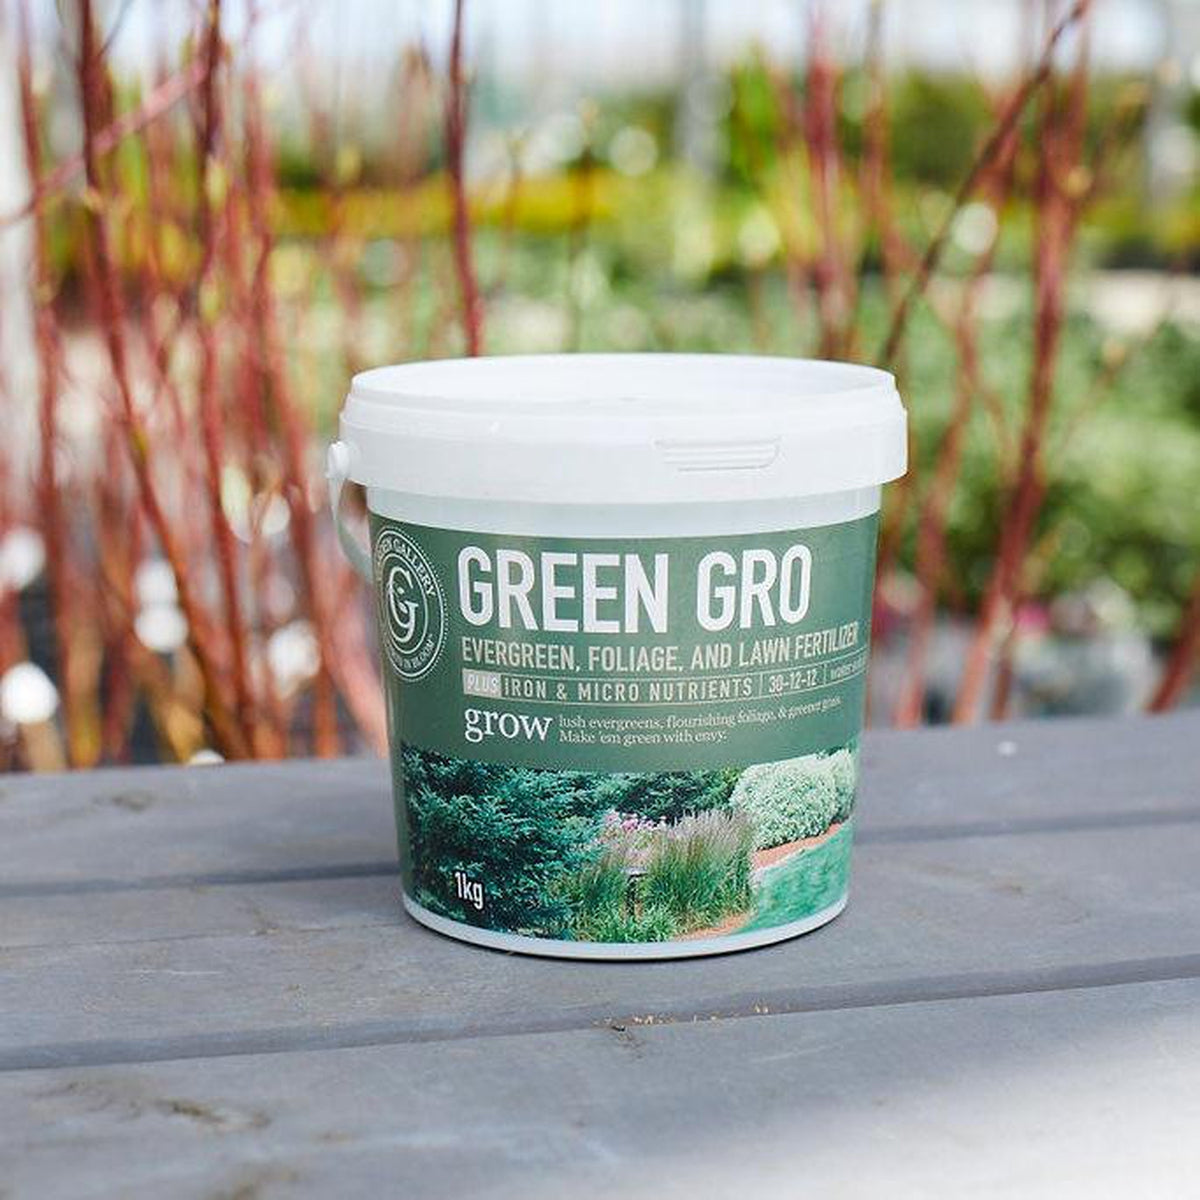 Garden Gallery Green Gro (Evergreen, Foliage & Lawn Fertilizer) (1 kg) (4671000903785)